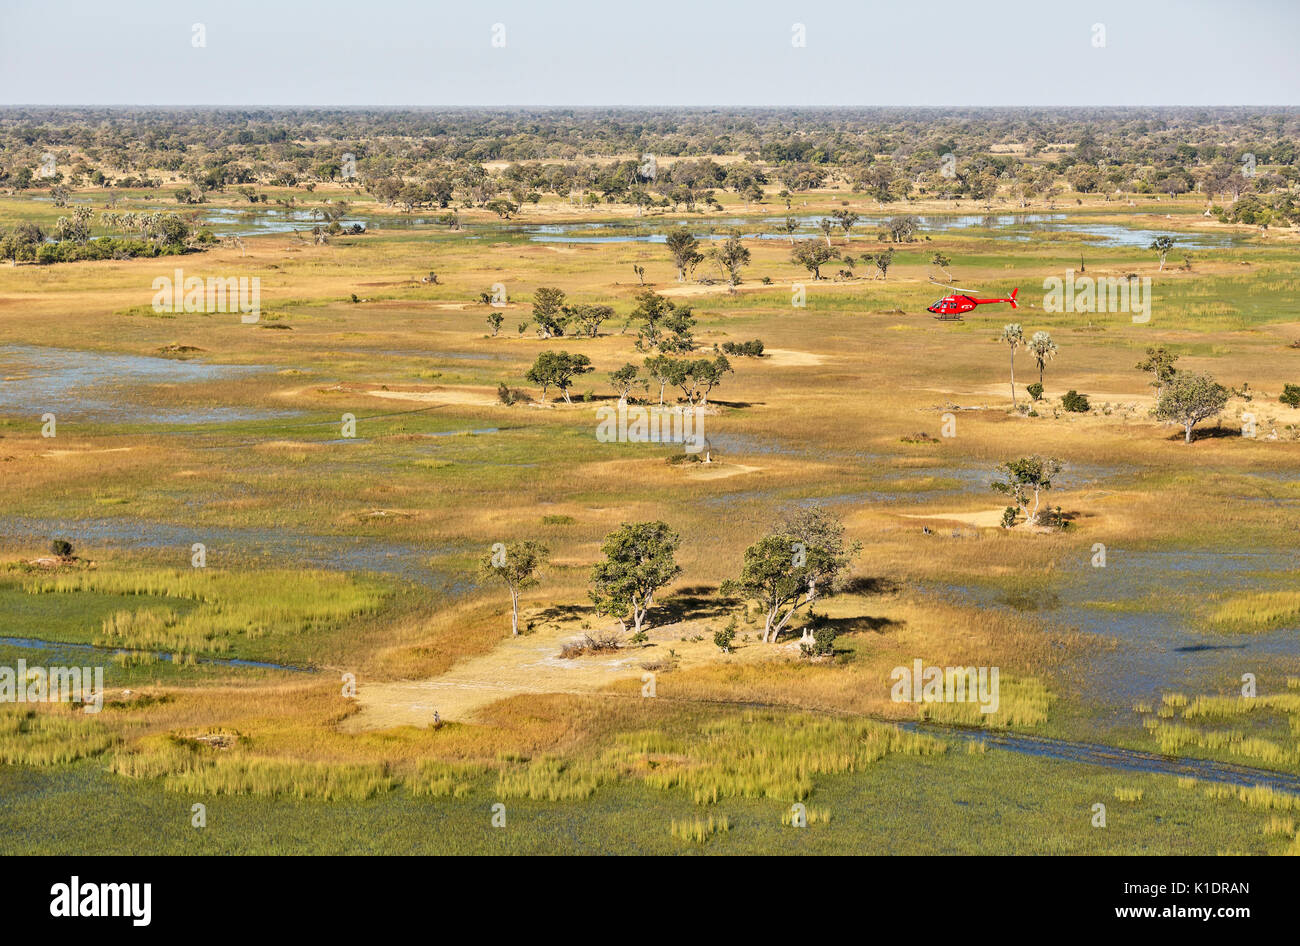 Freshwater marshes with streams, channels and islands, the helicopter is on a scenic flight, aerial view, Okavango Delta - Stock Image